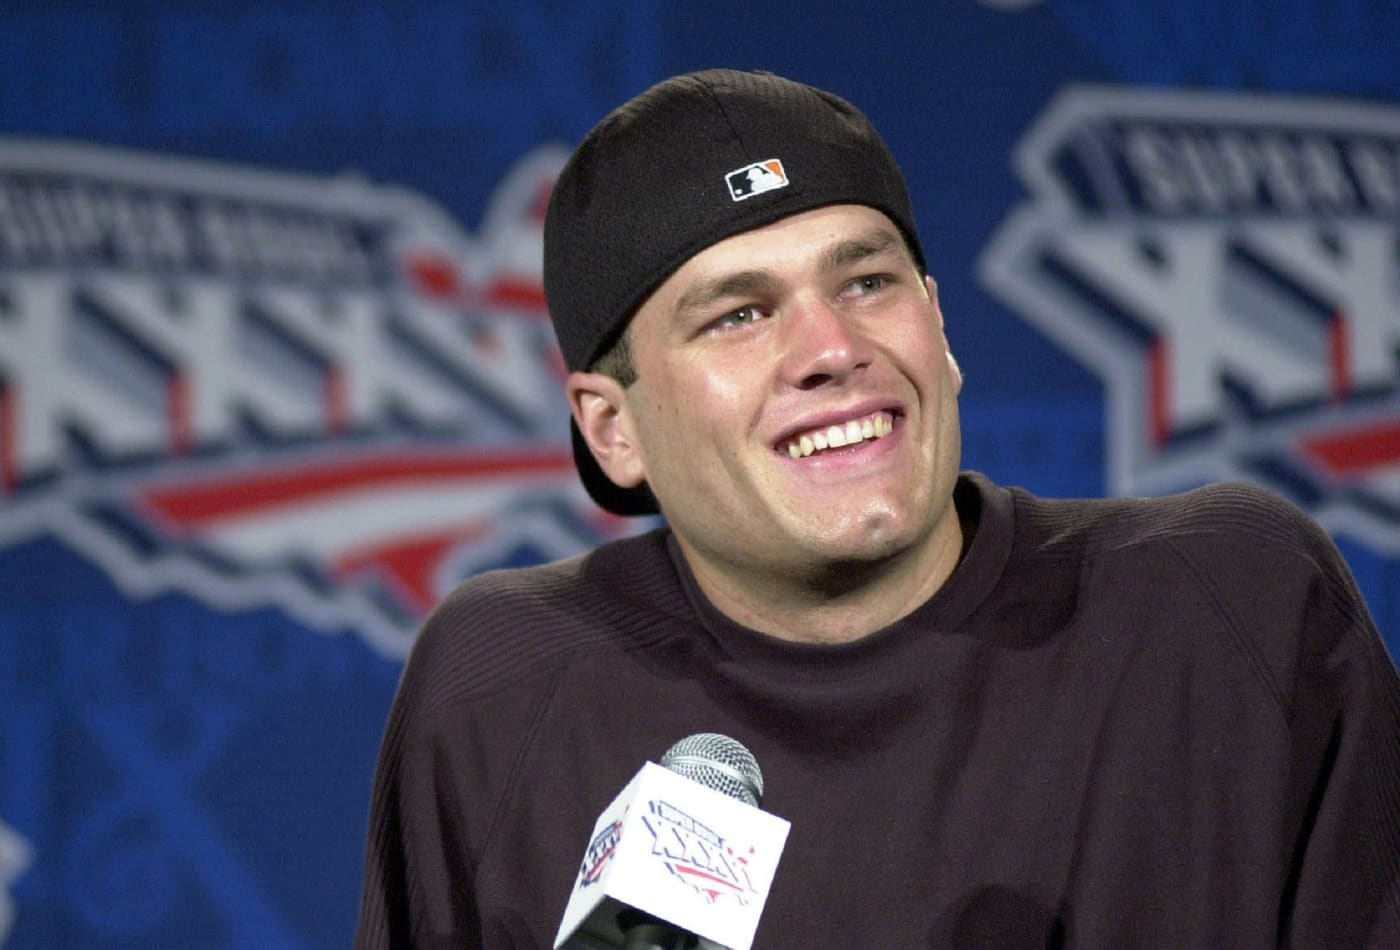 See Tom Brady in his first sit down interview as an NFL rookie—he talks sitting the bench